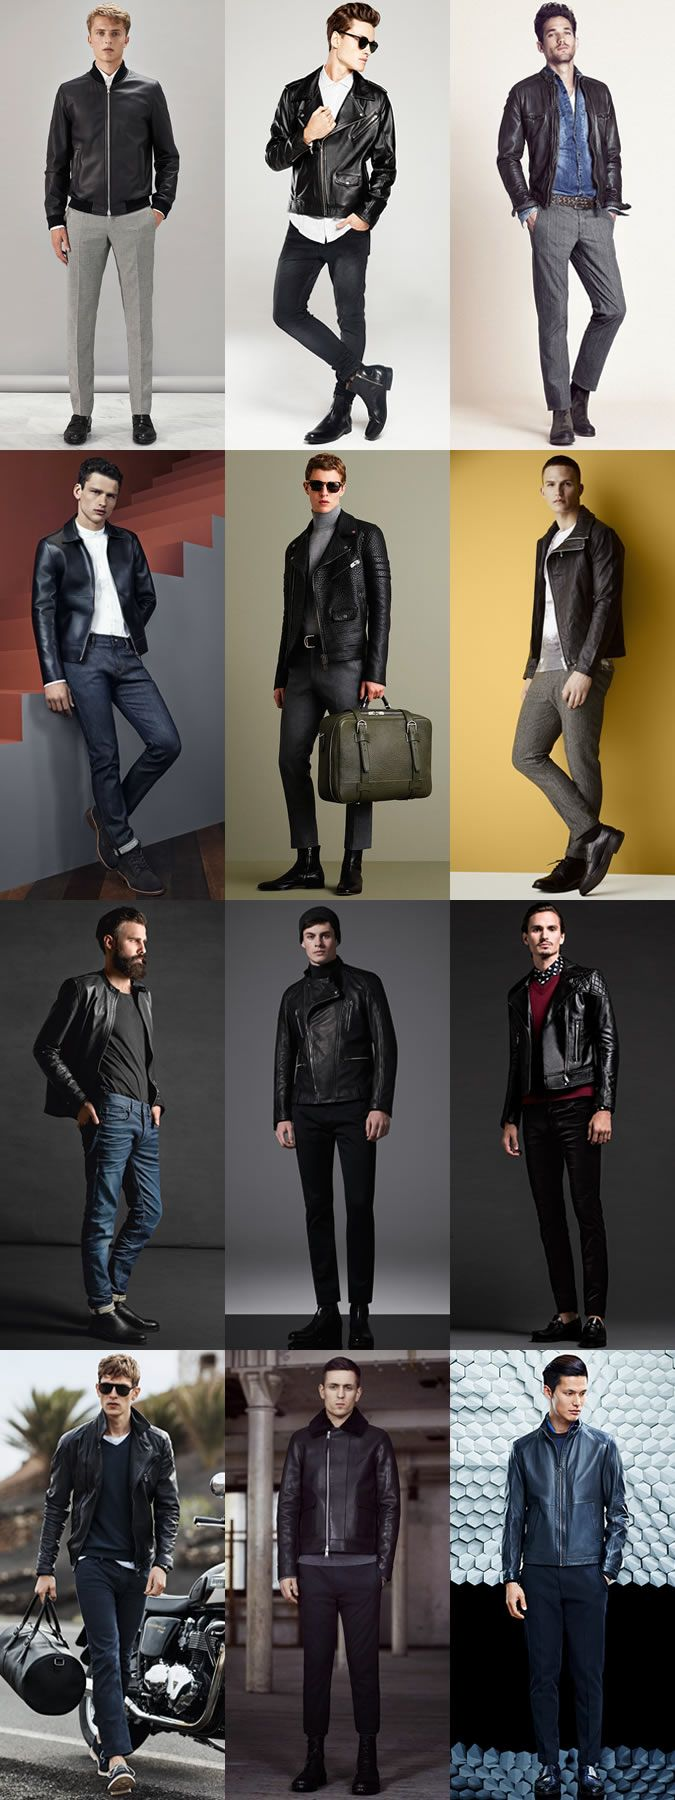 Men's Leather Jackets Outfit Inspiration Lookbook